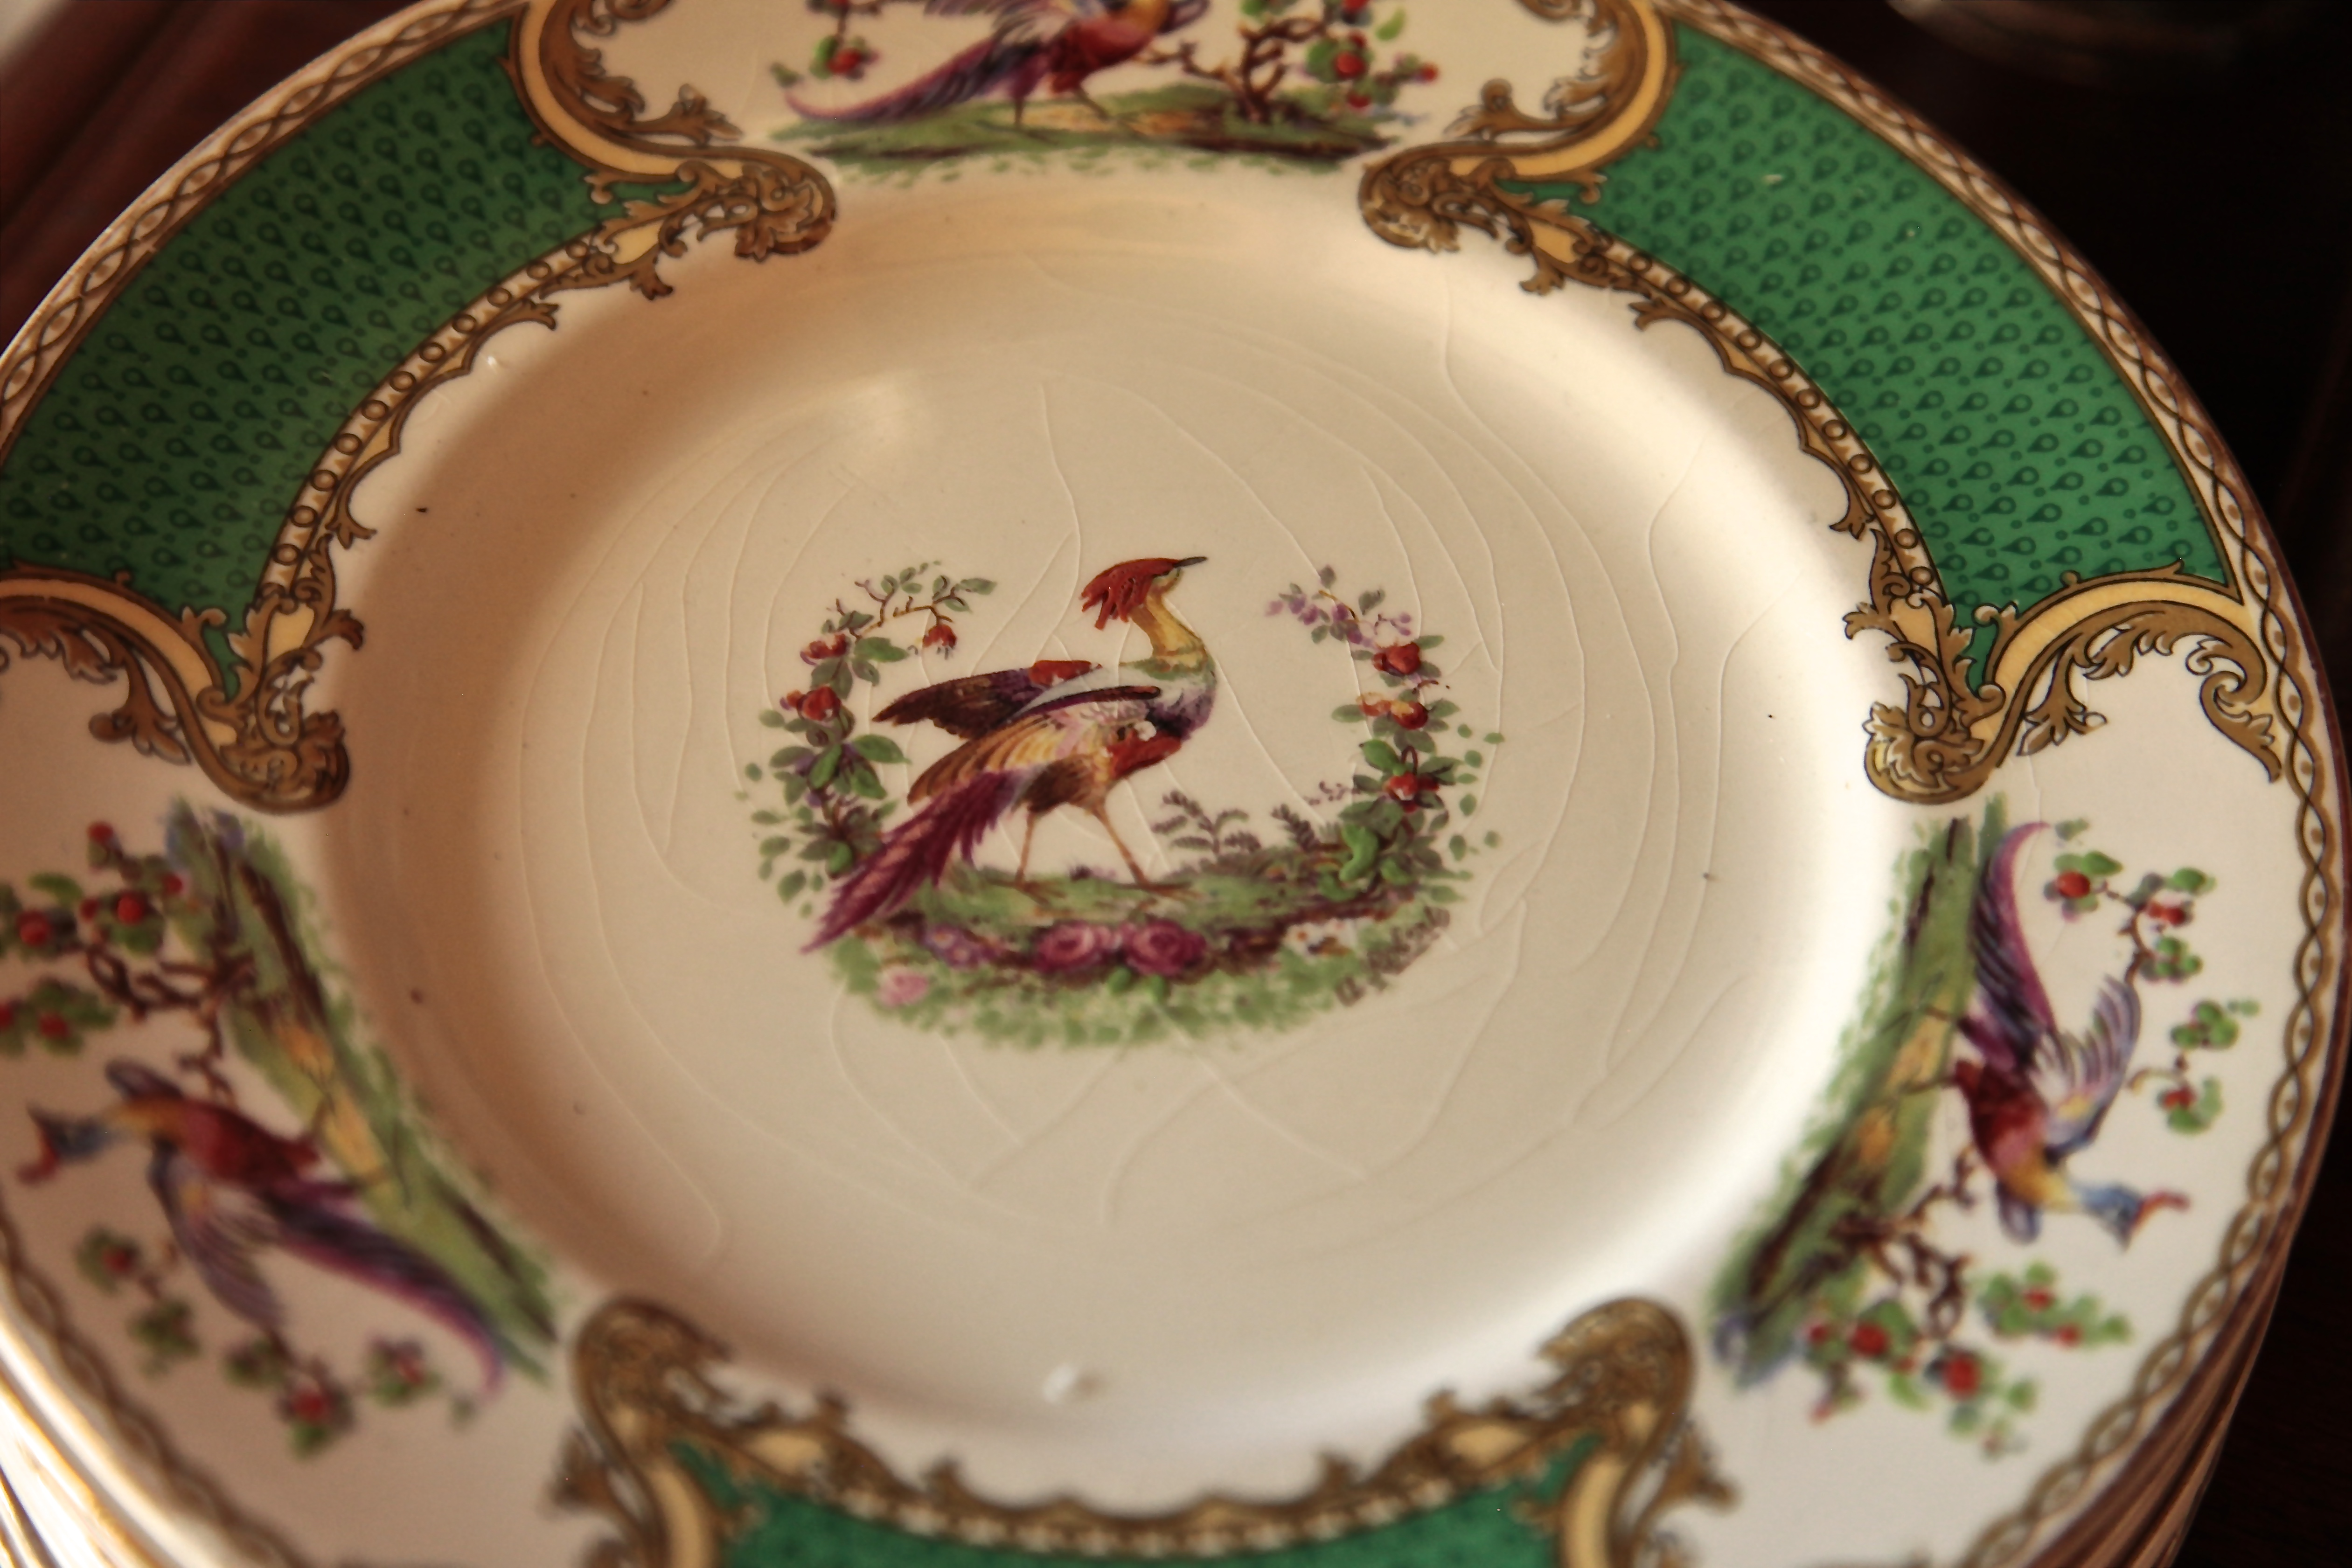 To add to the feeling of playfulness, I mixed several different types of china and table linens.